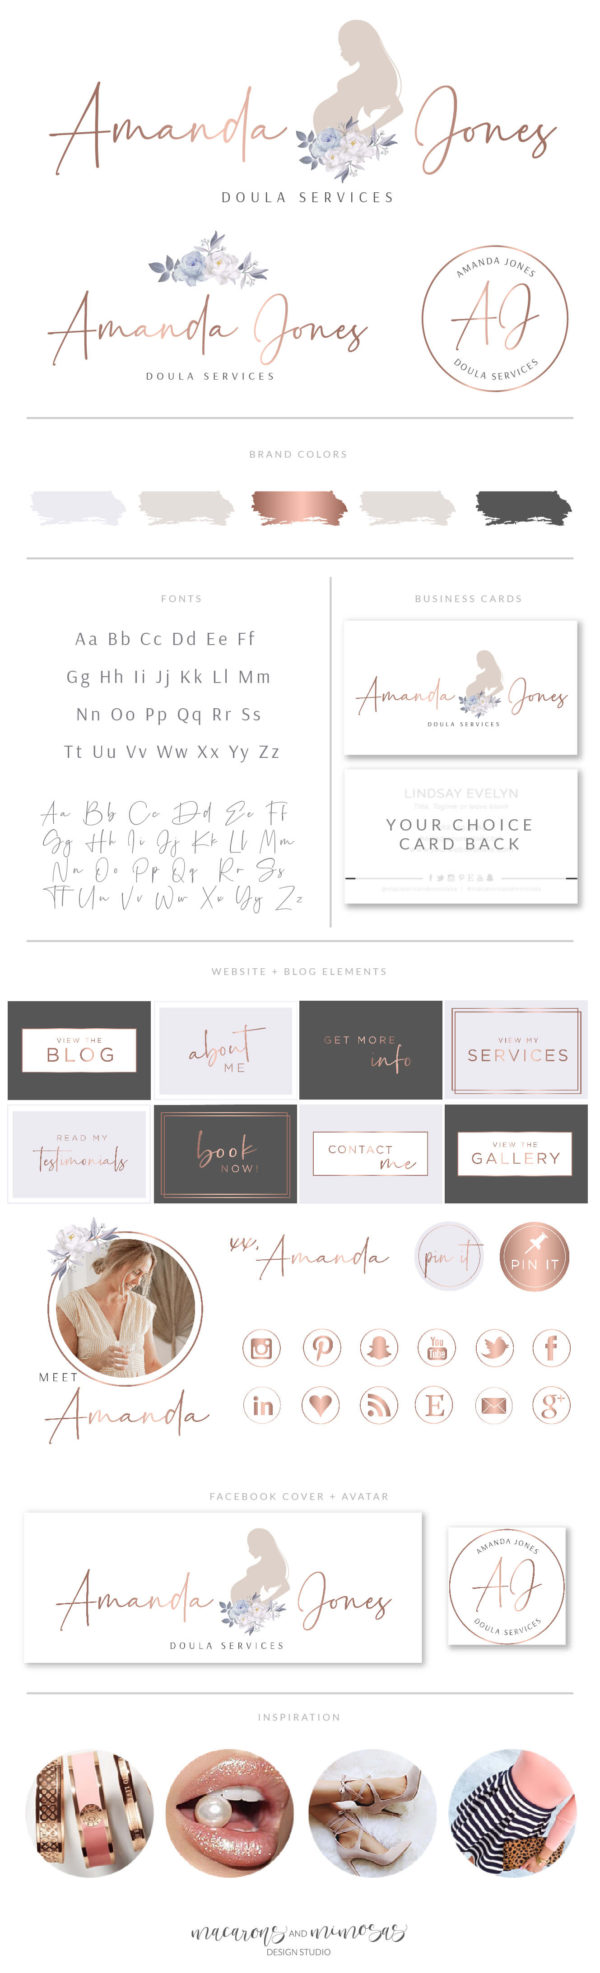 Midwife pregnancy logo, Doula baby birth Logo and Branding, Premade Branding Kit, Newborn Coaching and Maternity Watermark Package